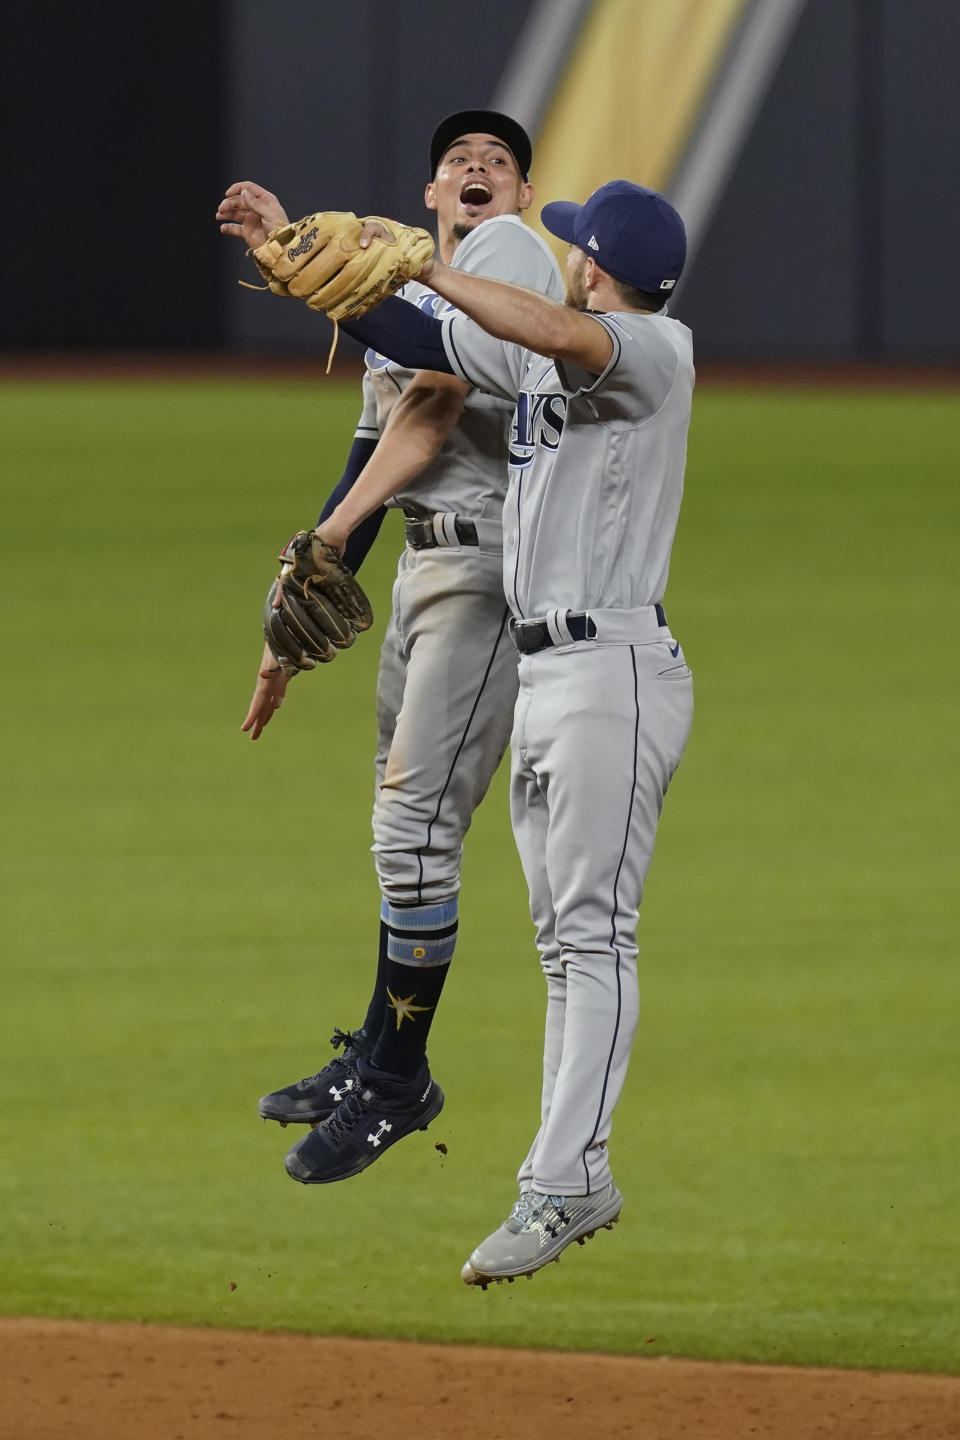 Tampa Bay Rays shortstop Willy Adames and second baseman Brandon Lowe celebrate their win in Game 2 of the baseball World Series against the Los Angeles Dodgers Wednesday, Oct. 21, 2020, in Arlington, Texas. Ray beat the Dodgers 6-4.(AP Photo/Eric Gay)